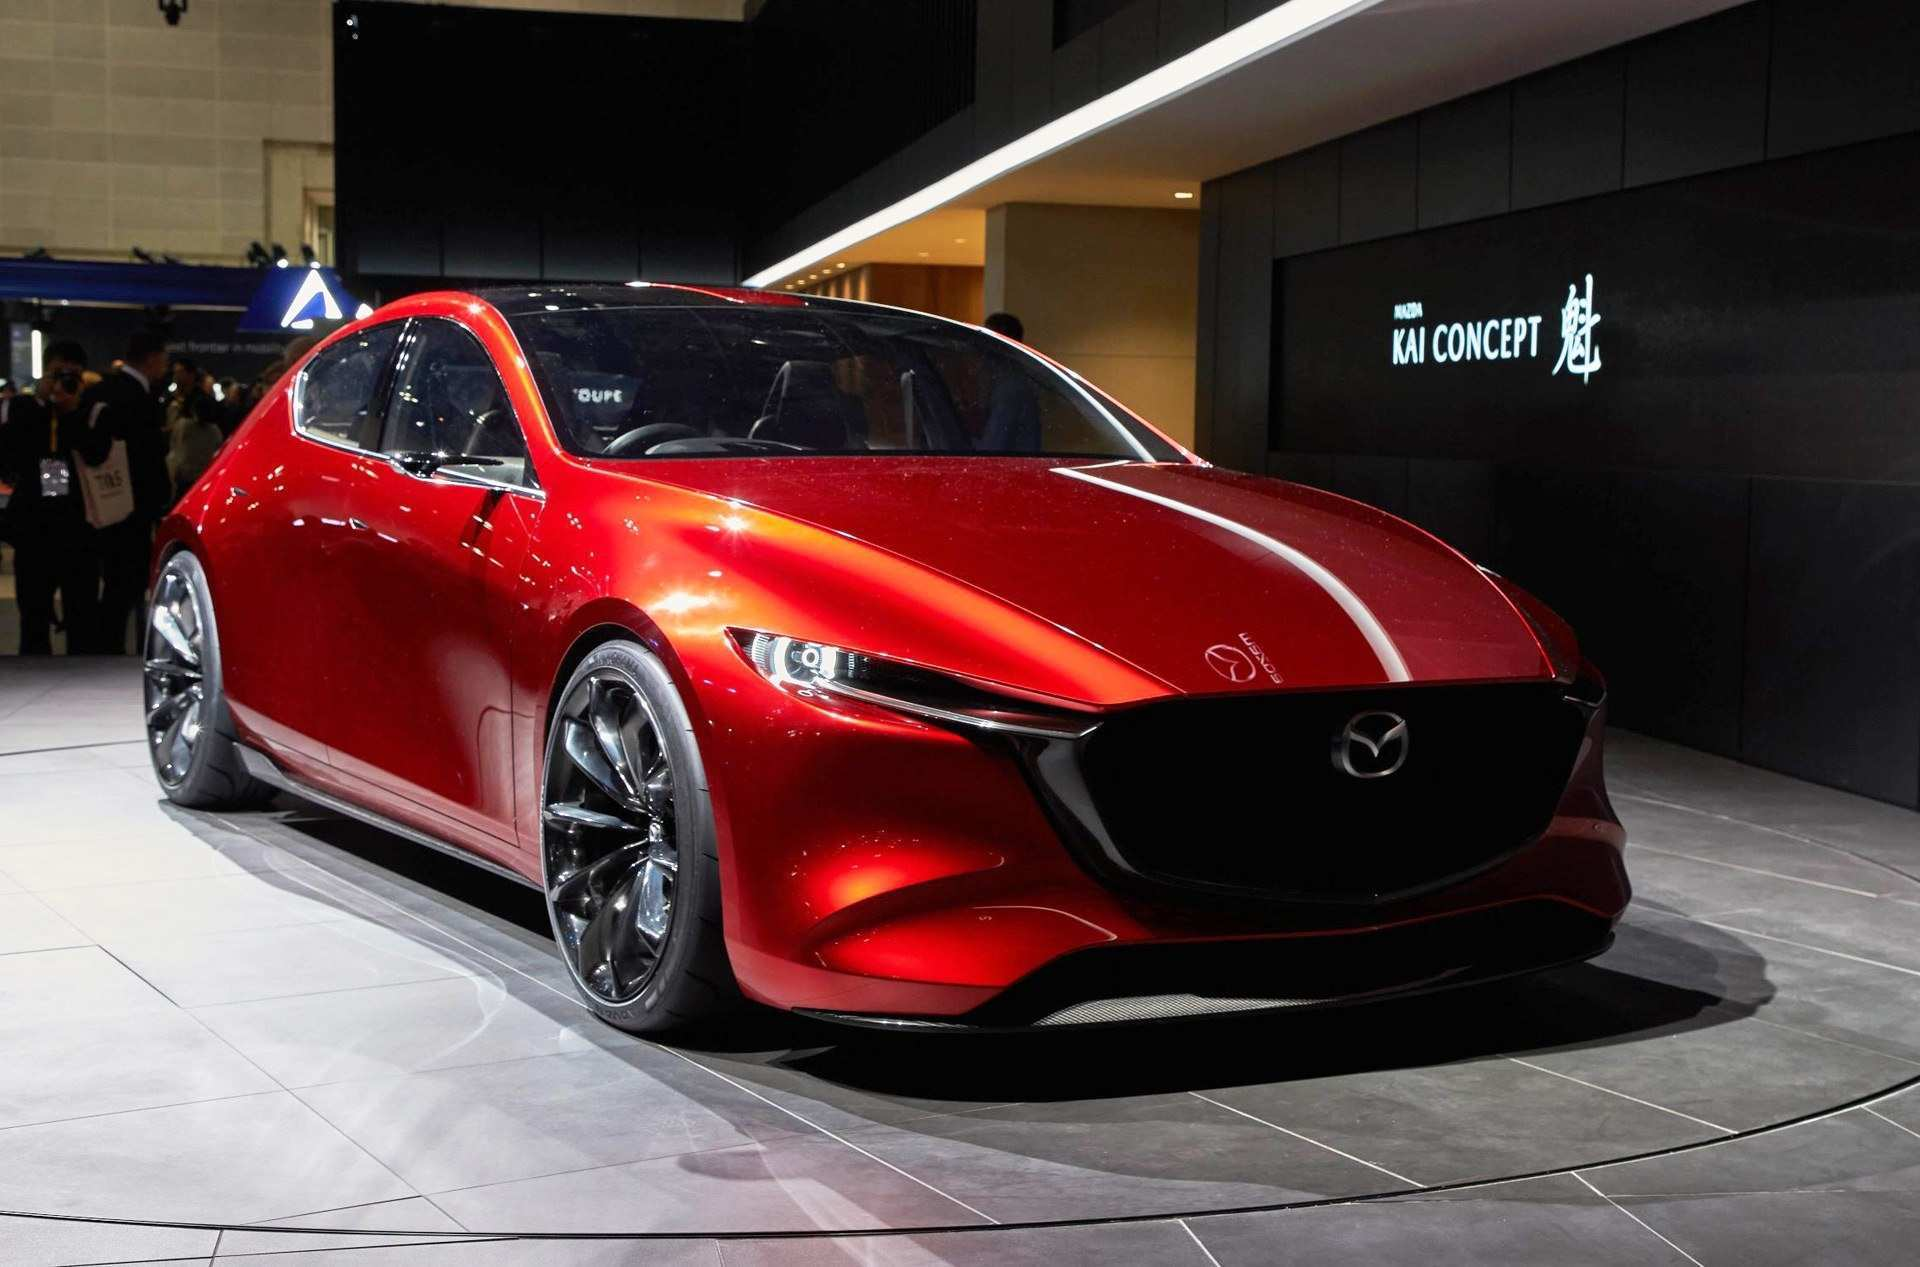 21 Great 2020 Mazda 3 Turbo History with 2020 Mazda 3 Turbo